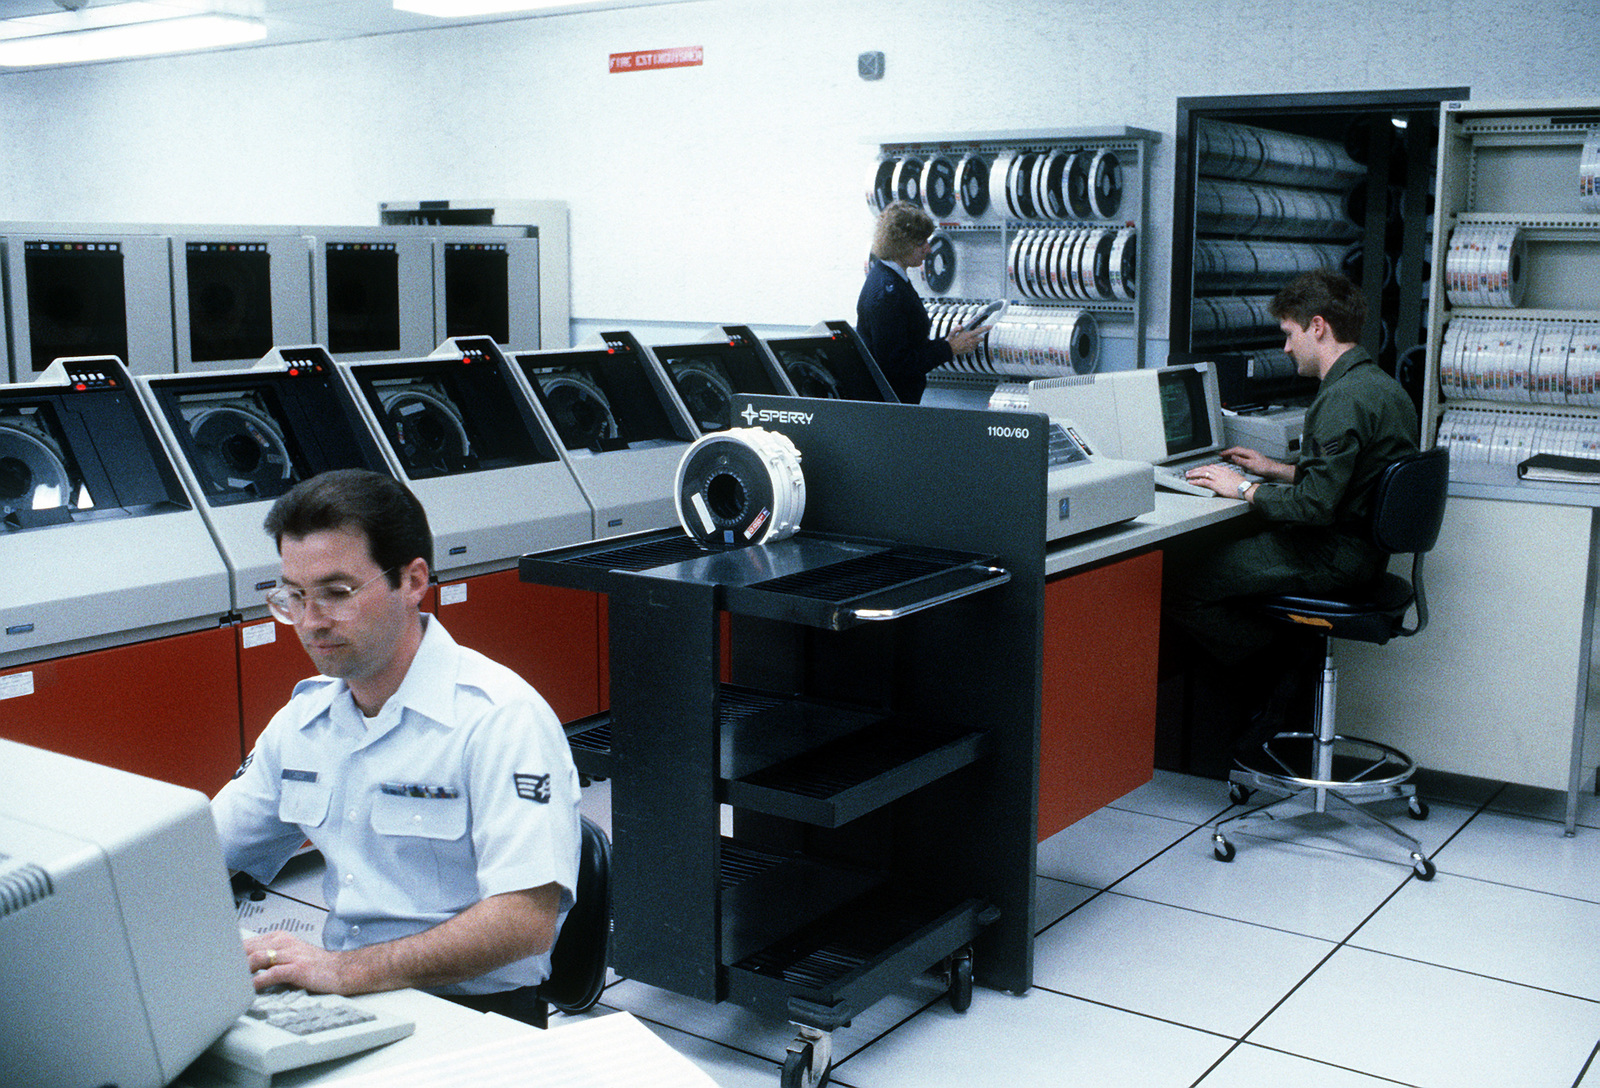 An interior view of the information processing center computer room